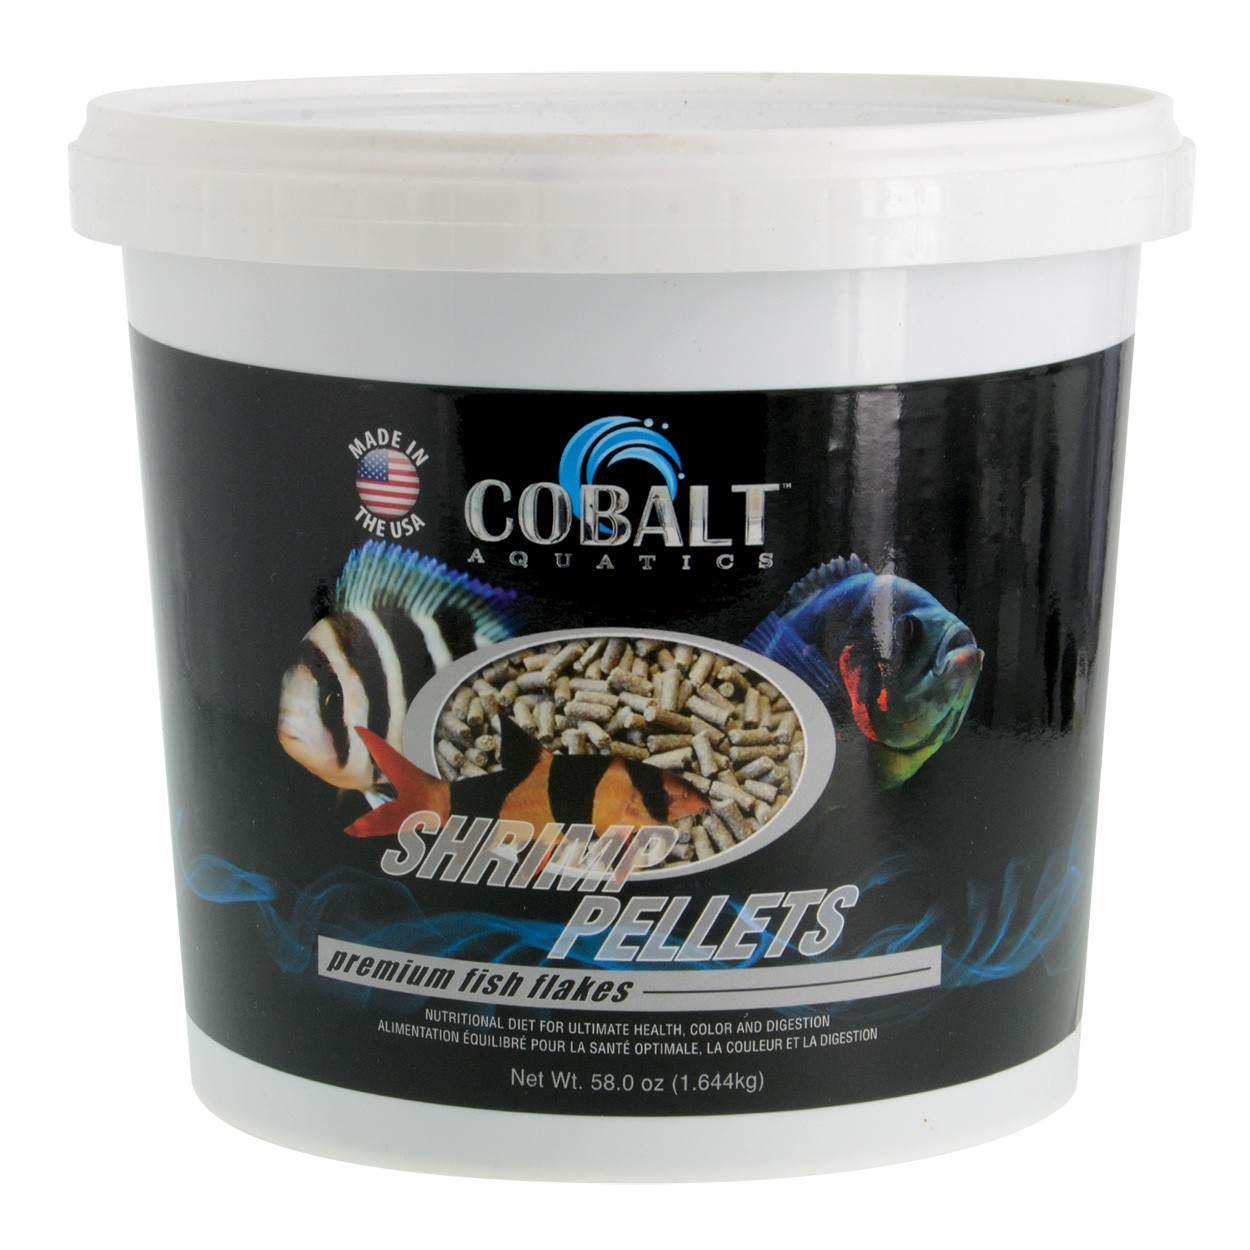 Cobalt aquatics shrimp pellets premium fish food for Bottom feeder fish list